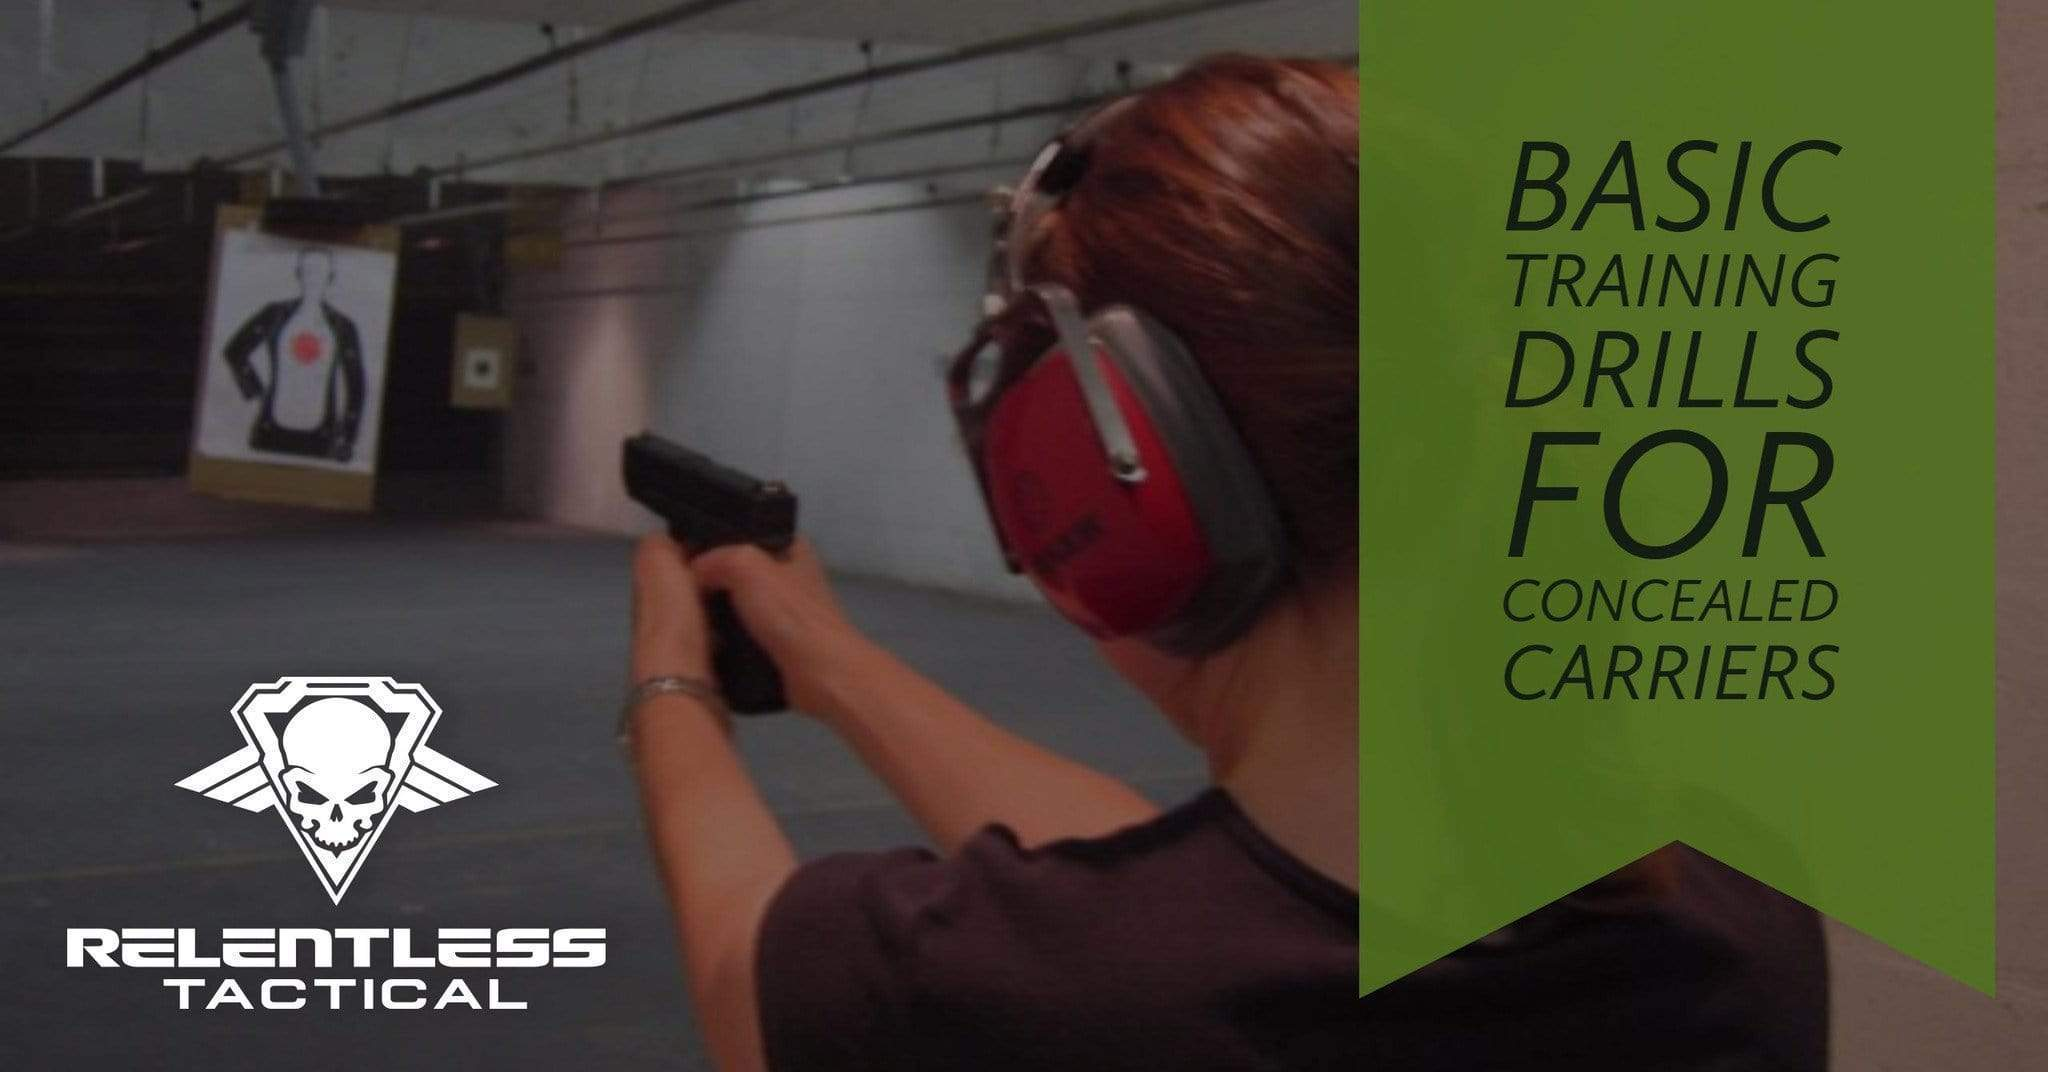 Basic Training Drills for Concealed Carriers